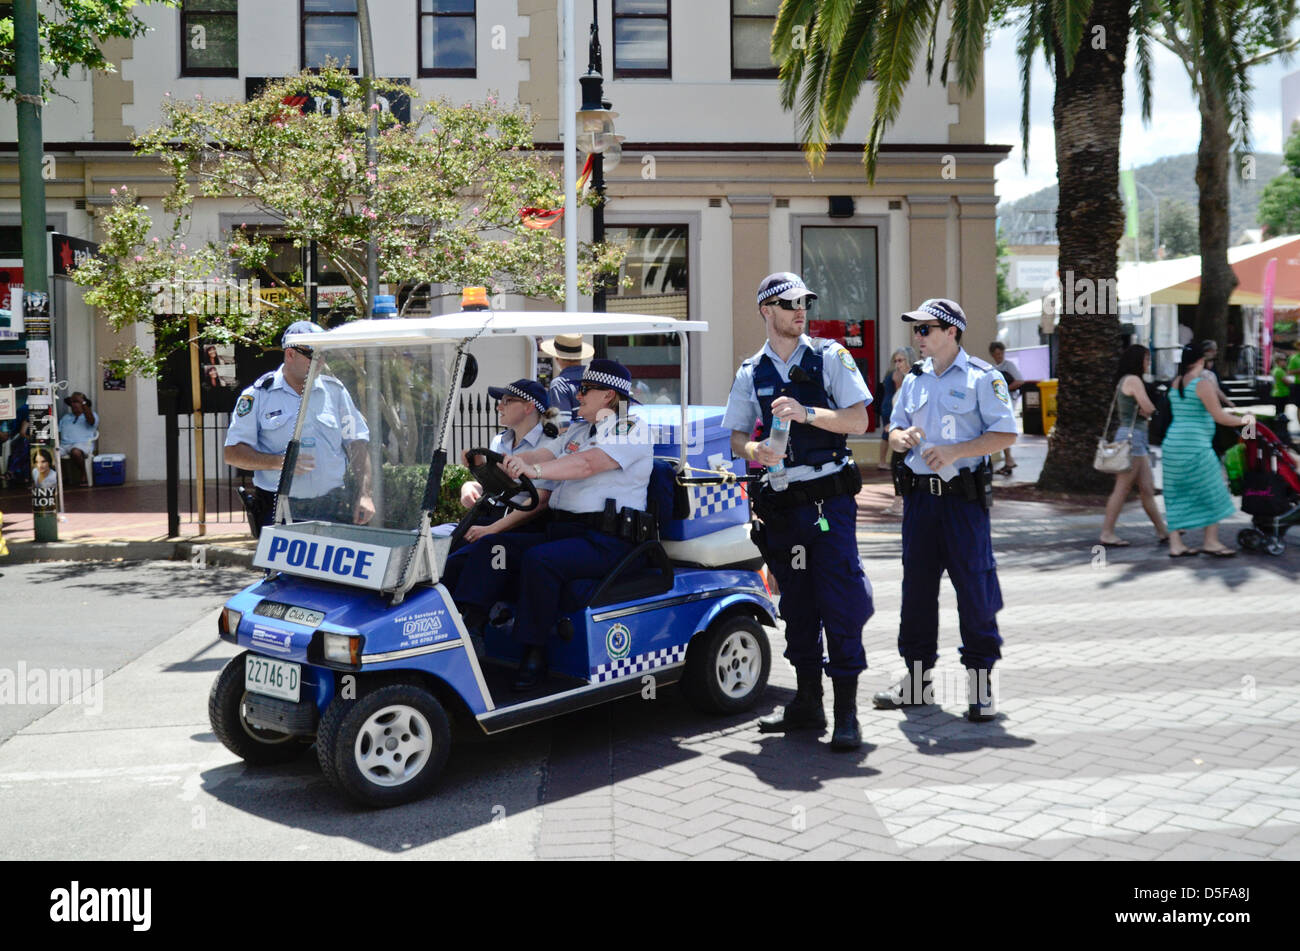 Australian police on street patrol using a golf buggy during Tamworth Music Festival 2013 - Stock Image